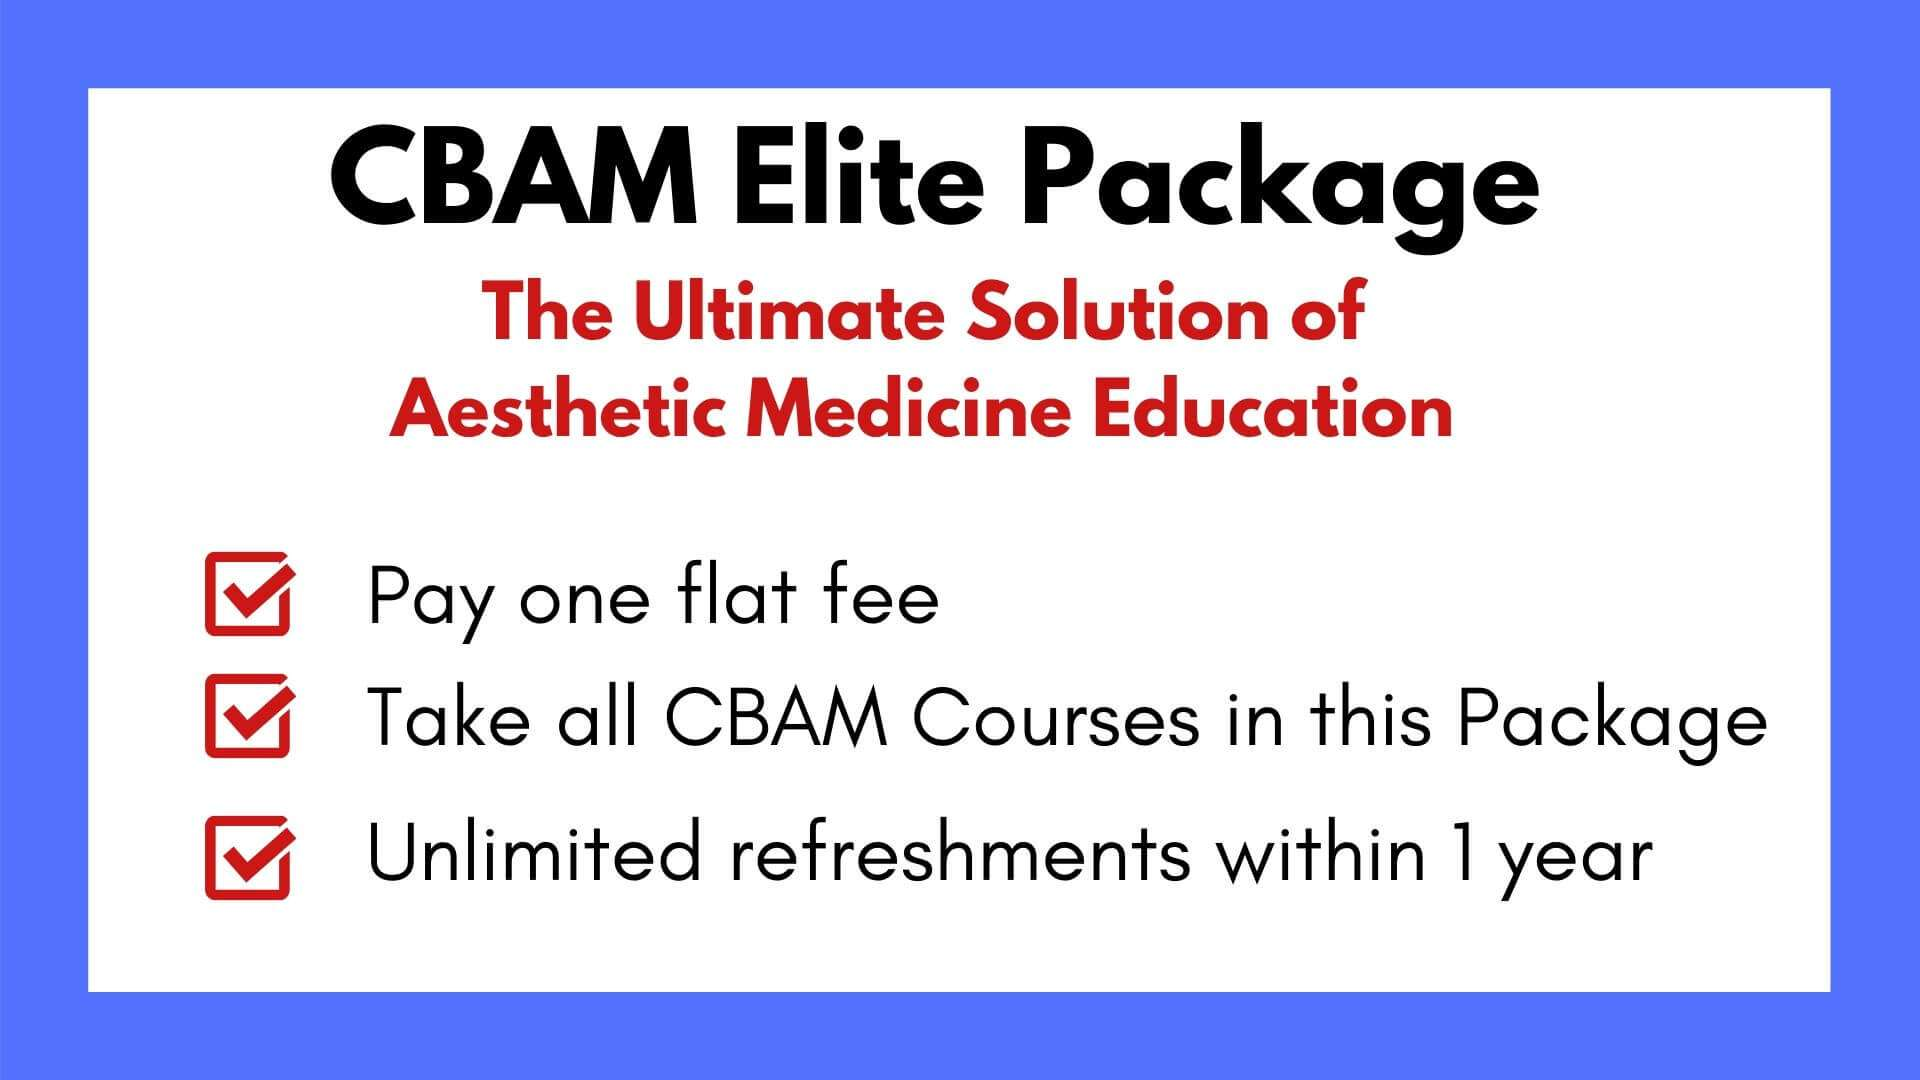 Elite package, Facial Anatomy Cadaver Lab, Botox and filler course, Advanced botox and filler course, Master injector, Skin treatments, Chemical peel course, botox and filler training